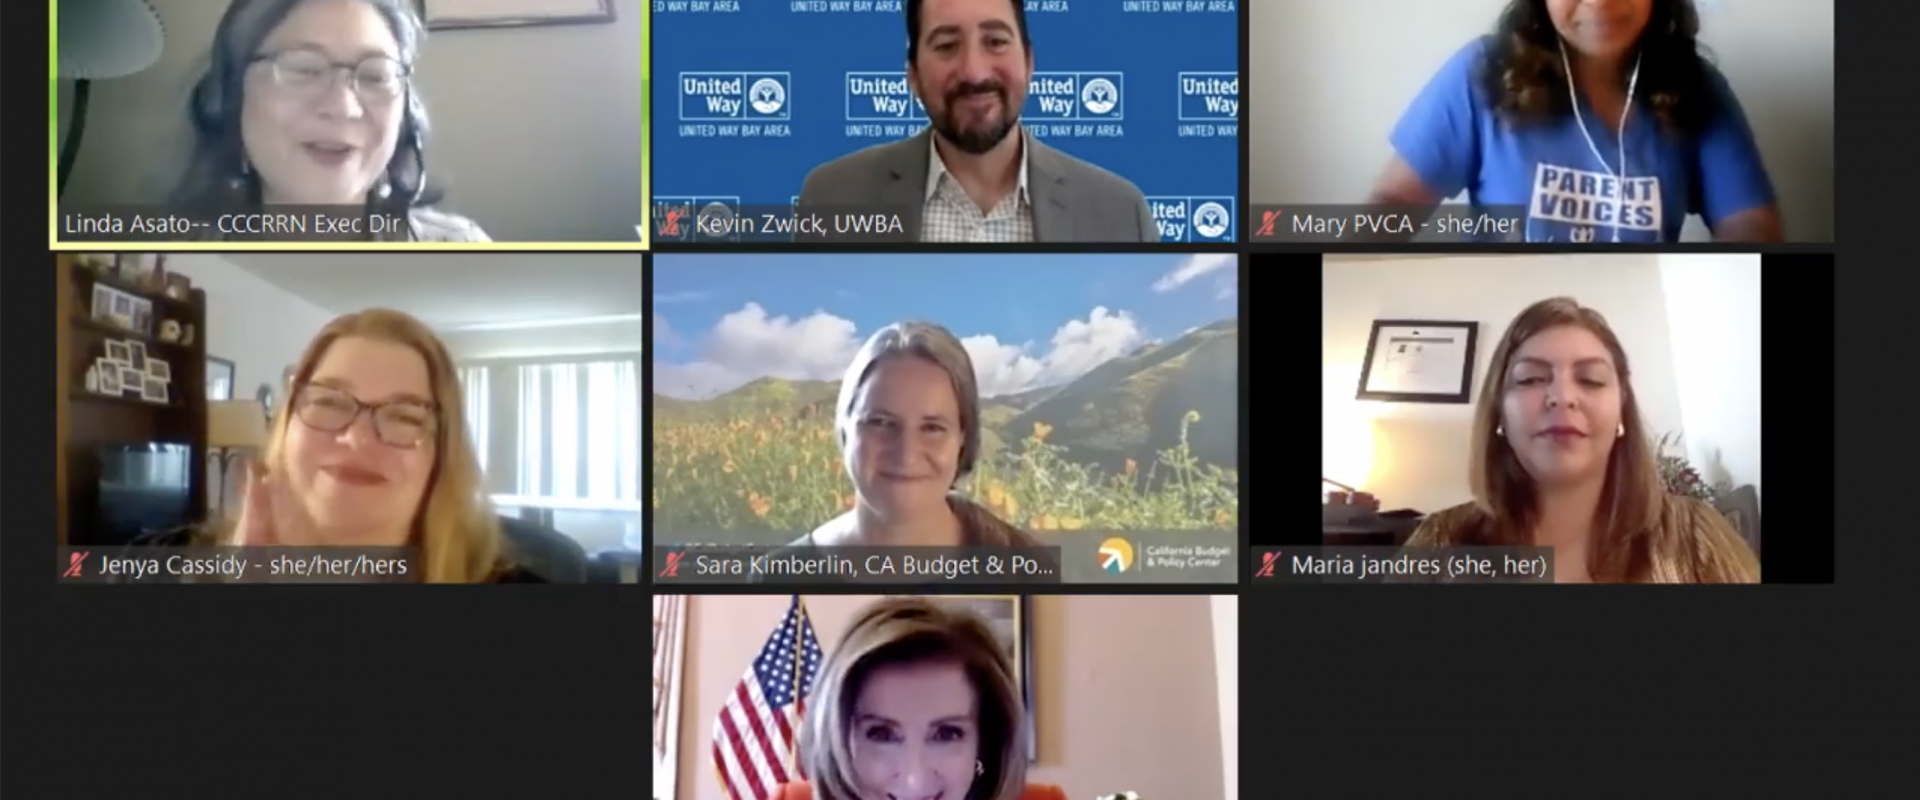 Ahead of the May 17th tax deadline, Congresswoman Nancy Pelosi joined San Francisco parents, advocates and experts for a virtual roundtable to discuss the American Rescue Plan enhanced Child Tax Credit benefits and how it is helping families in San Franci